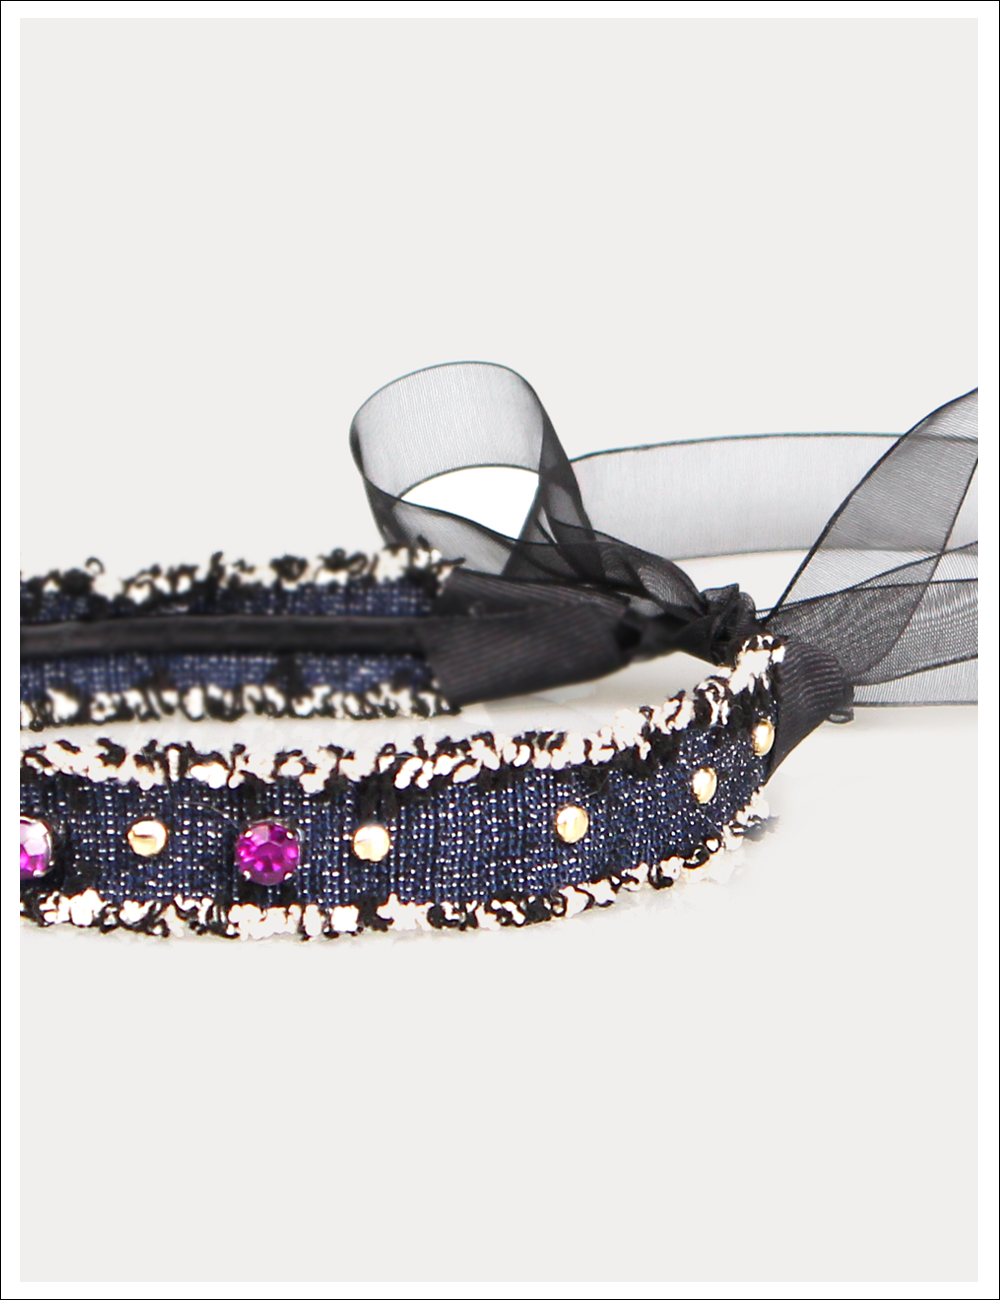 Masculine Feminine Ribbon hairband_Black